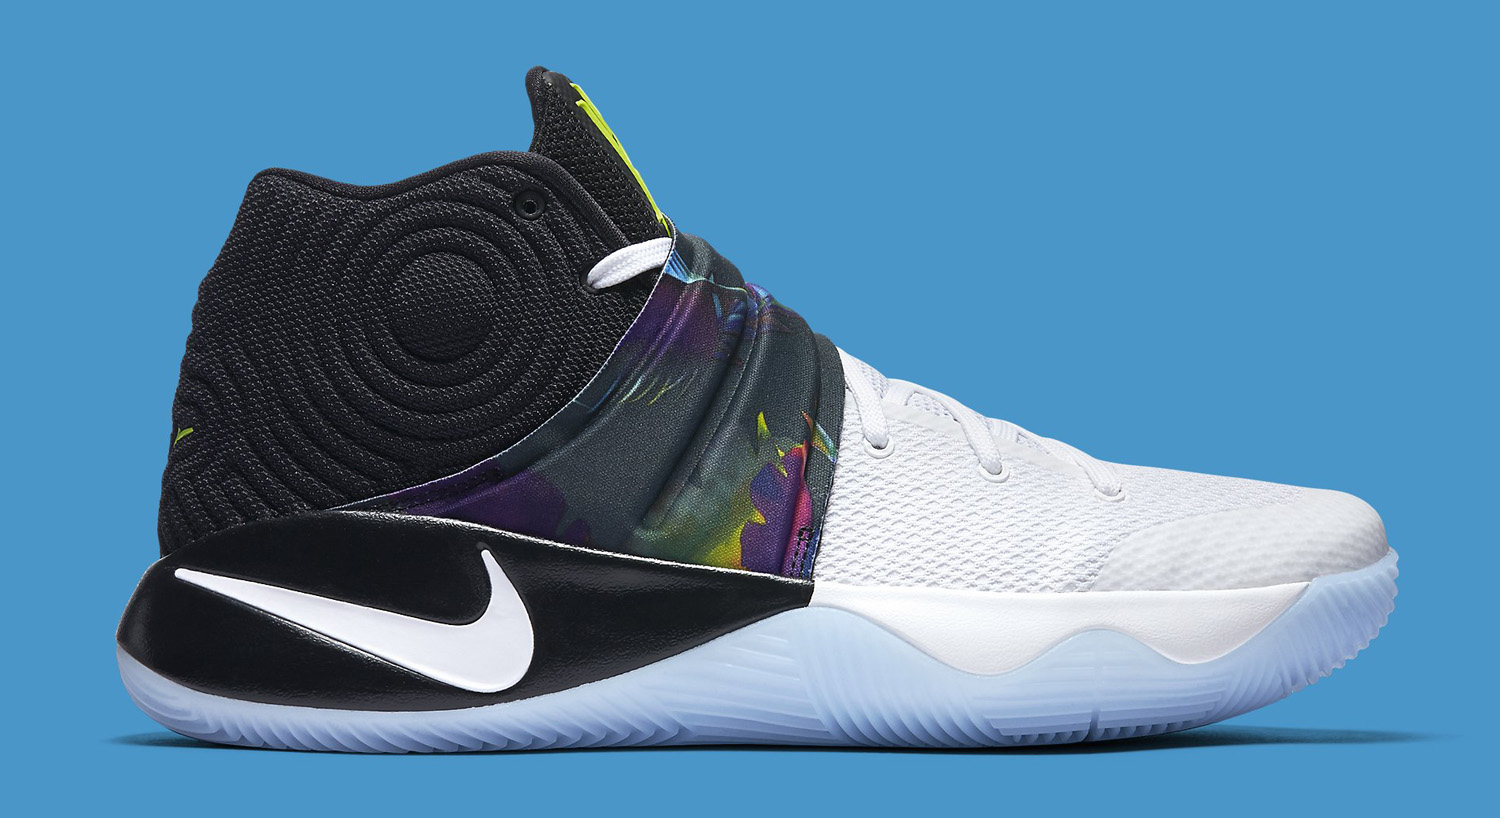 super popular bd228 d83fc Parade Kyrie 2 Release Date | Sole Collector